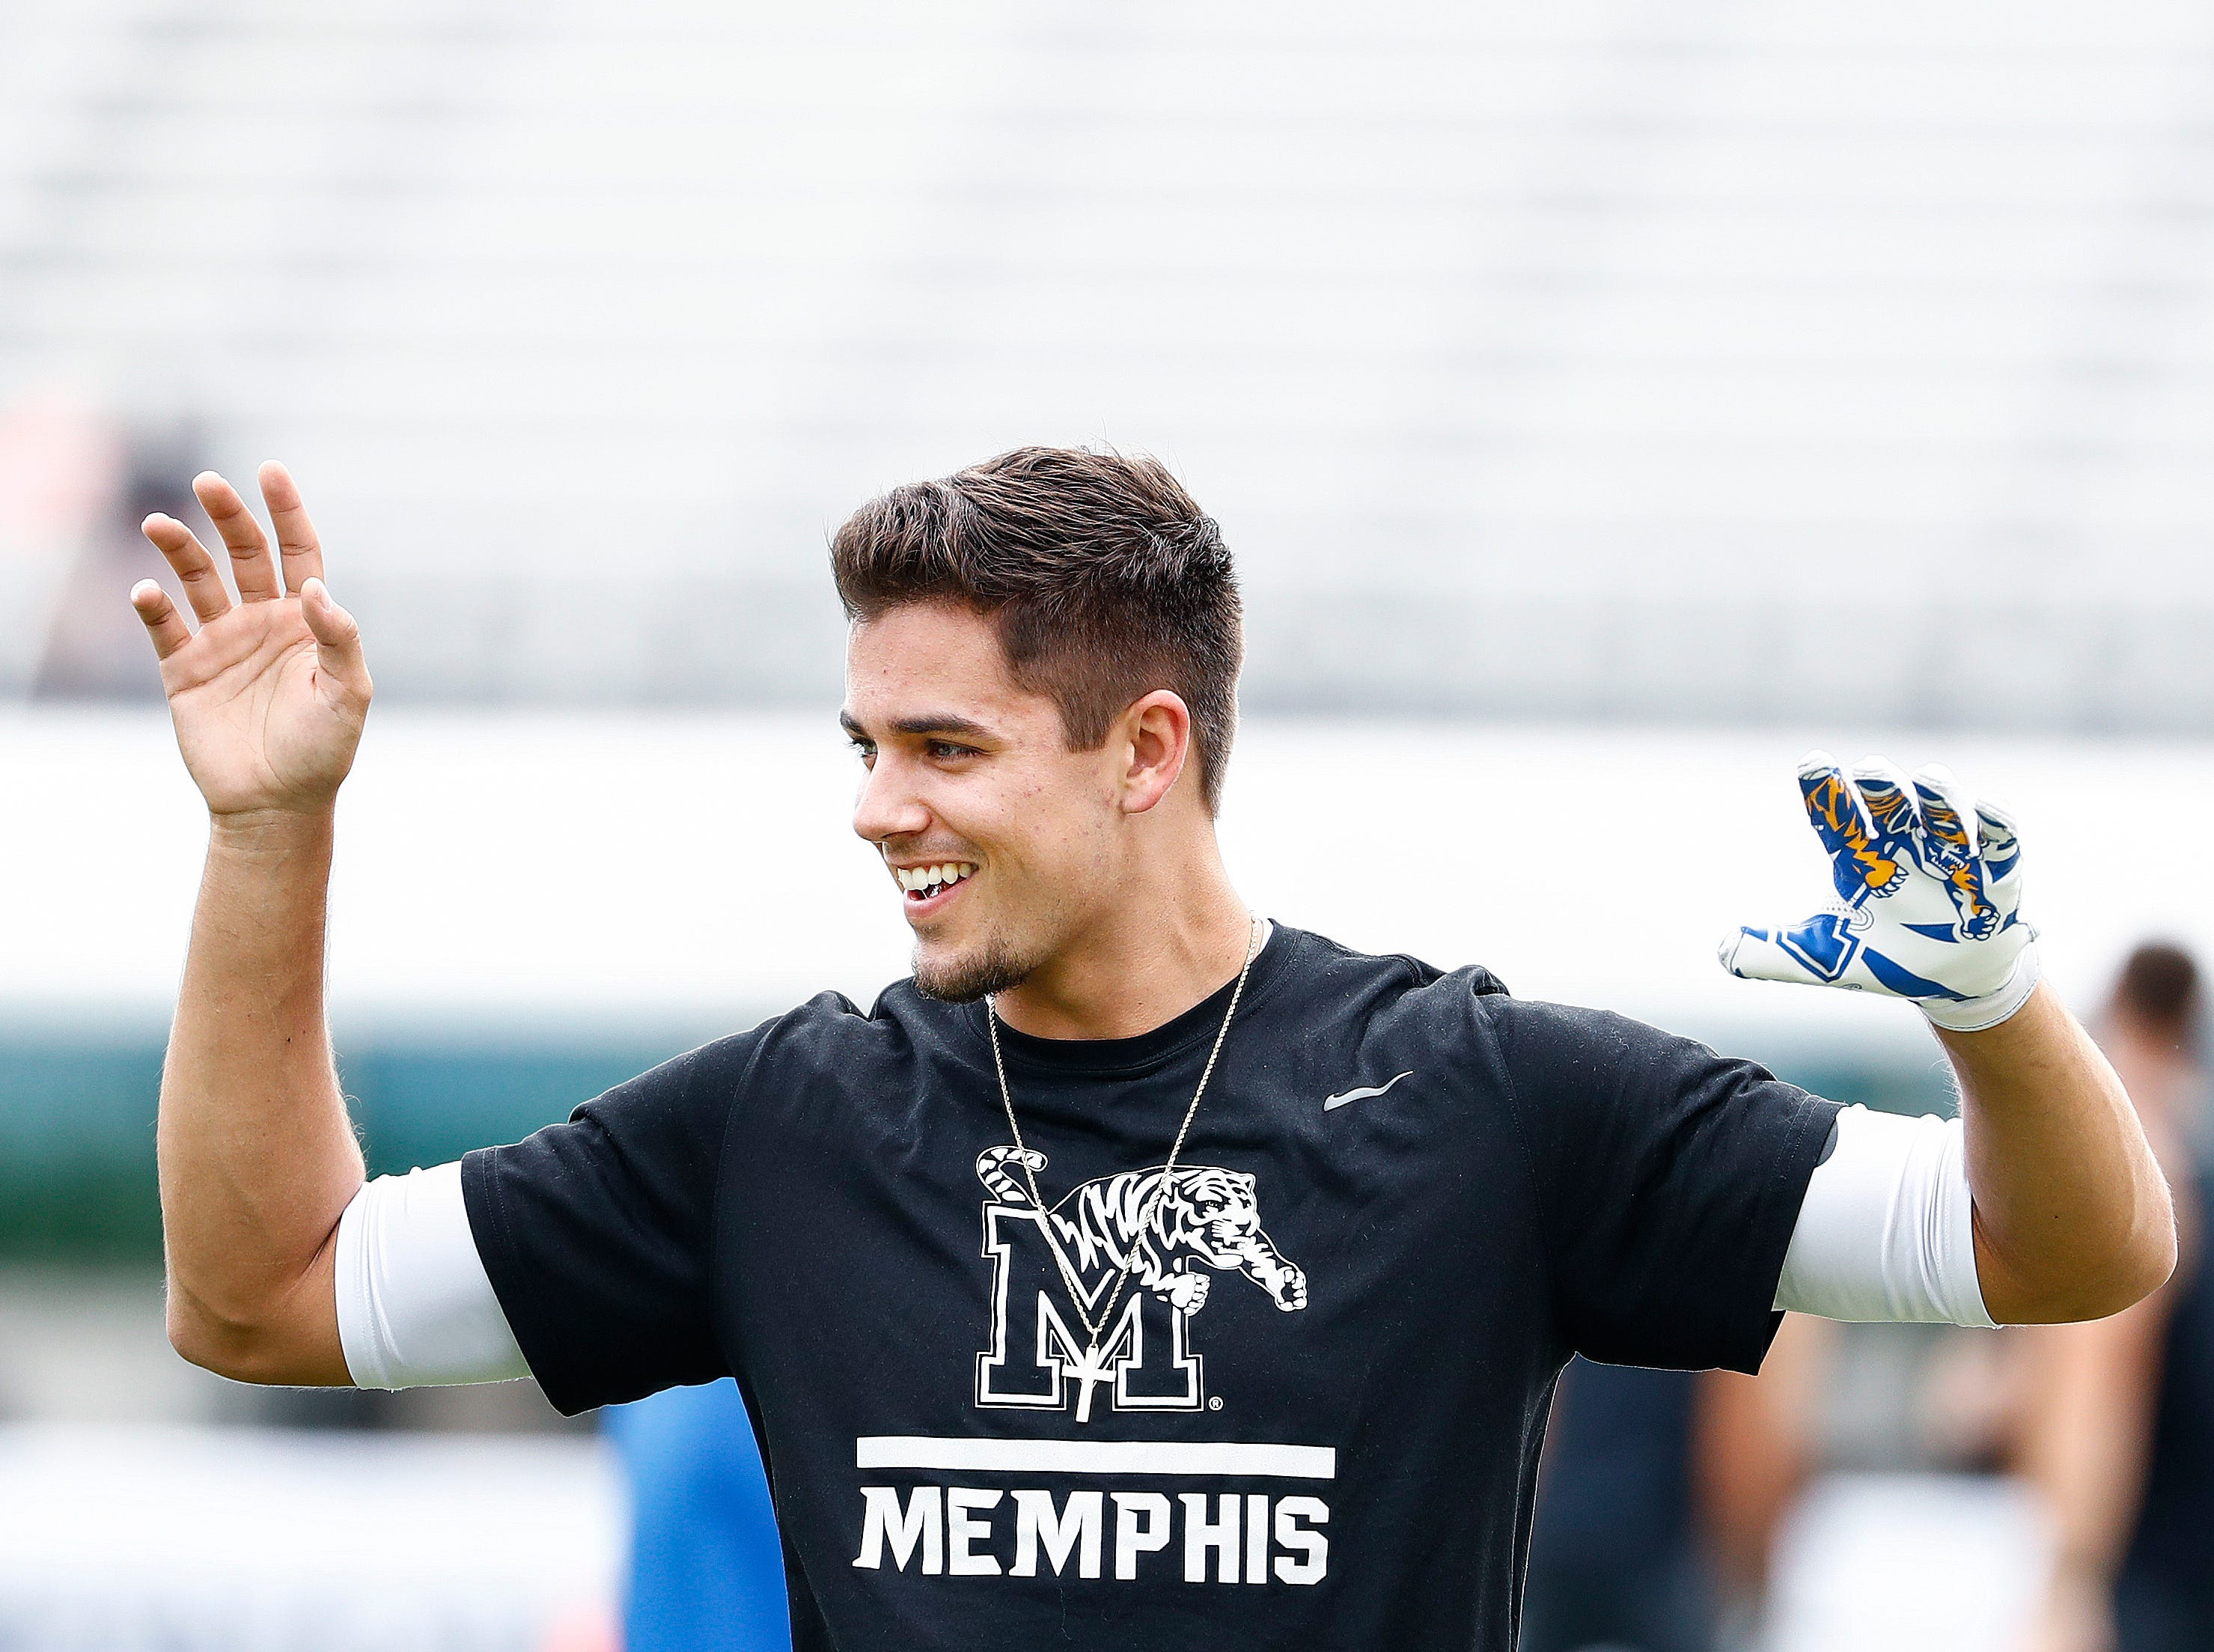 Memphis starting quarterback Brady White during warmups before taking on UCF in the AAC Championship Football game Saturday, December 1, 2018 in Orlando.